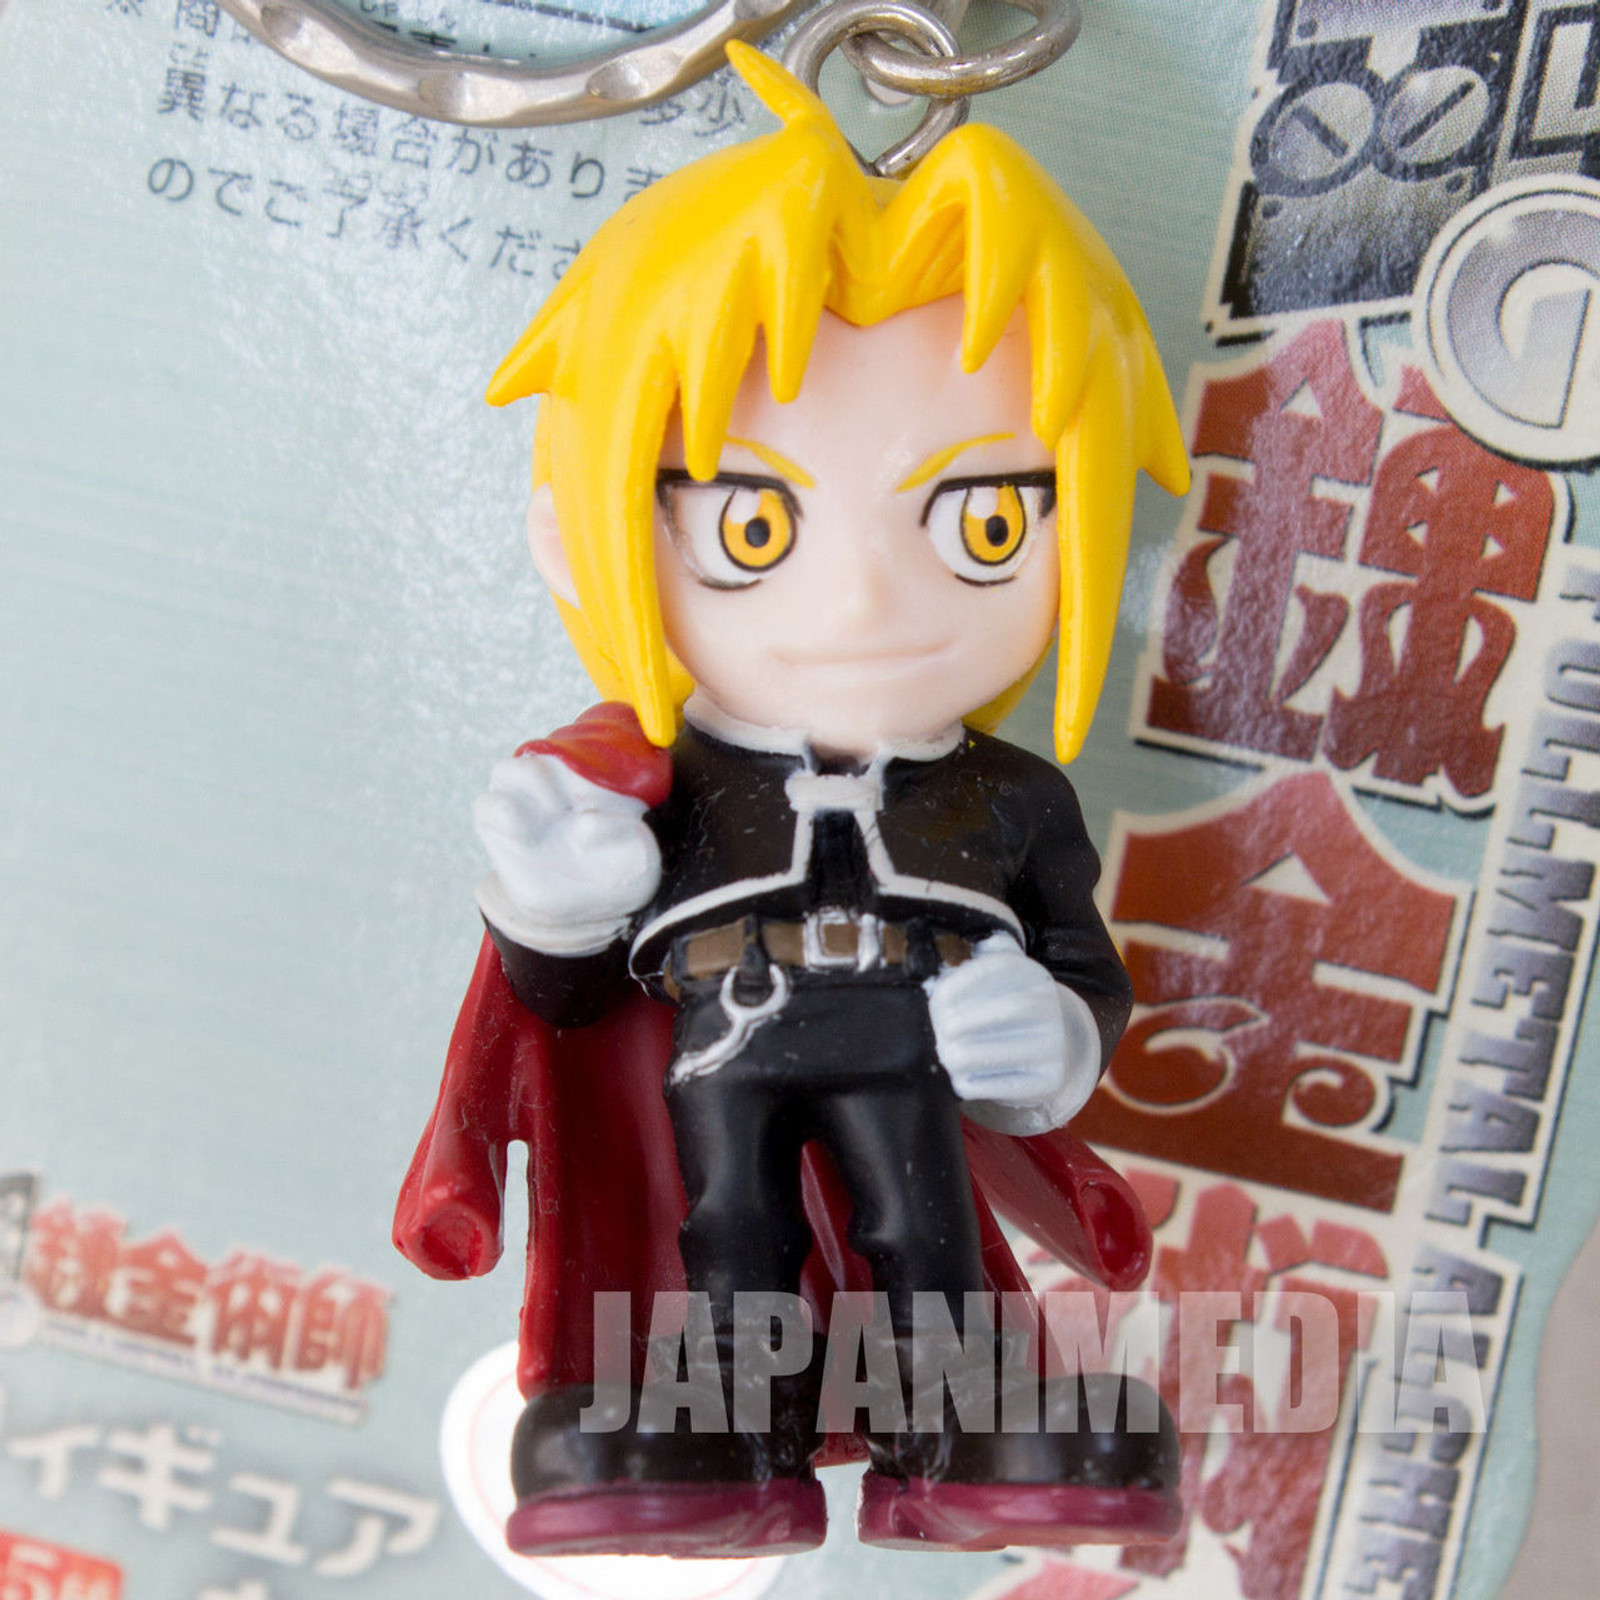 FullMetal Alchemist Edward Elric Figure Key Chain JAPAN ANIME